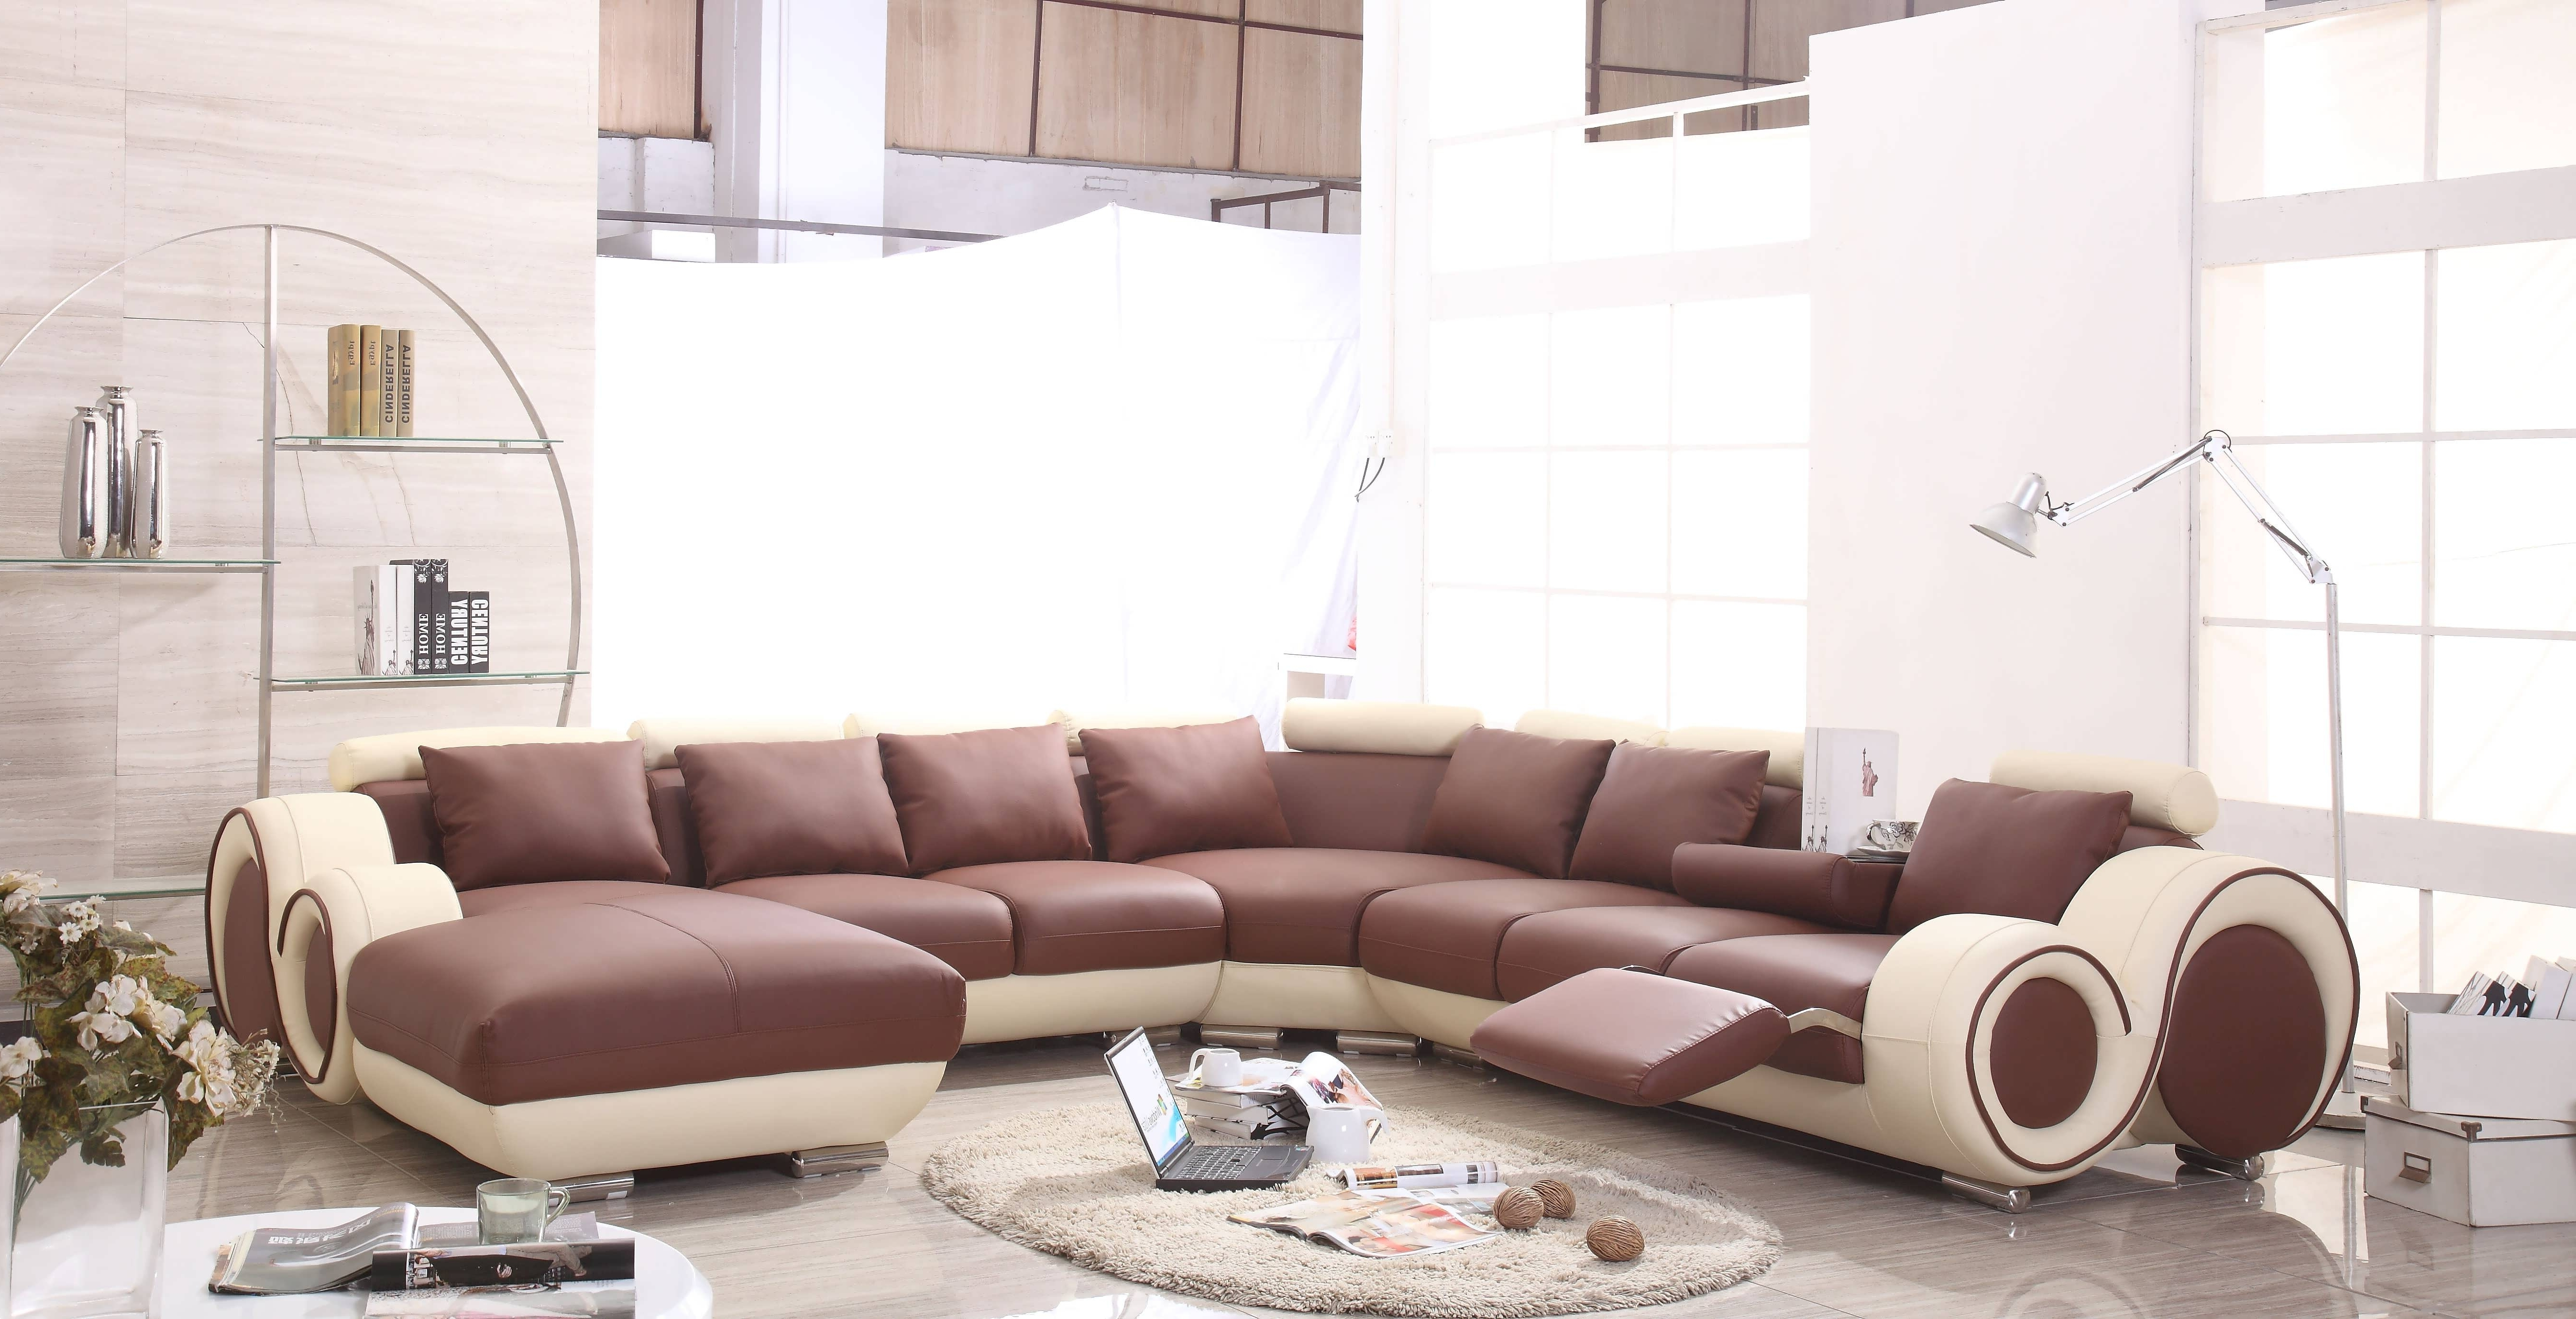 Double Chaise Sectionals Throughout Well Known Sofa : Grey Sectional Sofa Double Chaise Sectional Couches (View 9 of 15)